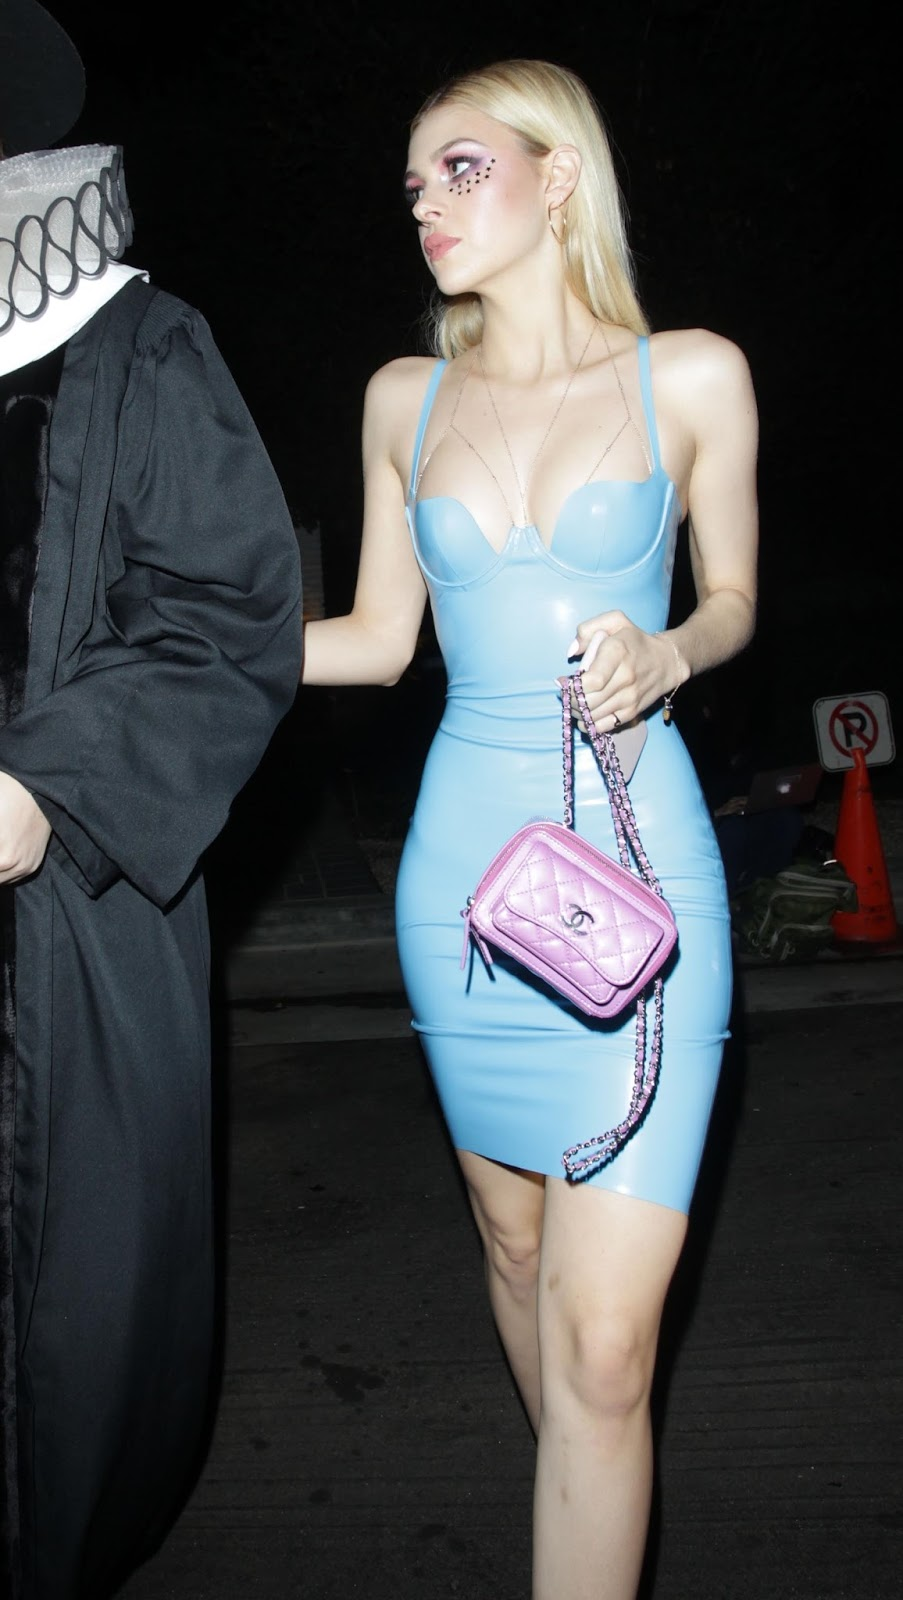 Holly Halston Latex for lovely ladies in leather: nicola peltz in a latex mini-dress